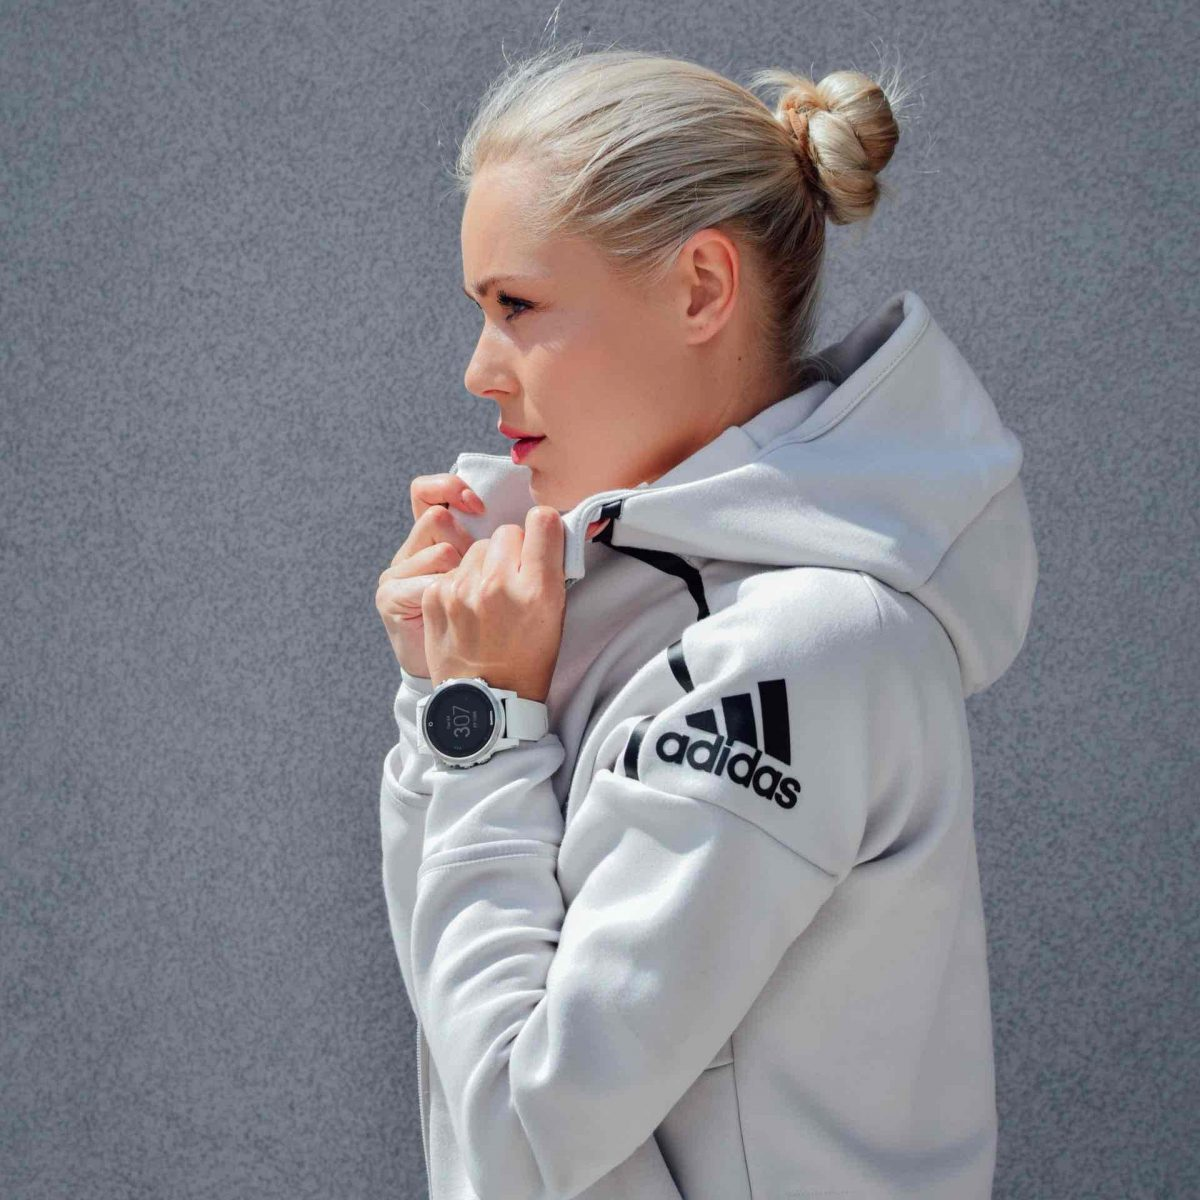 woman wearing Adidas jacket